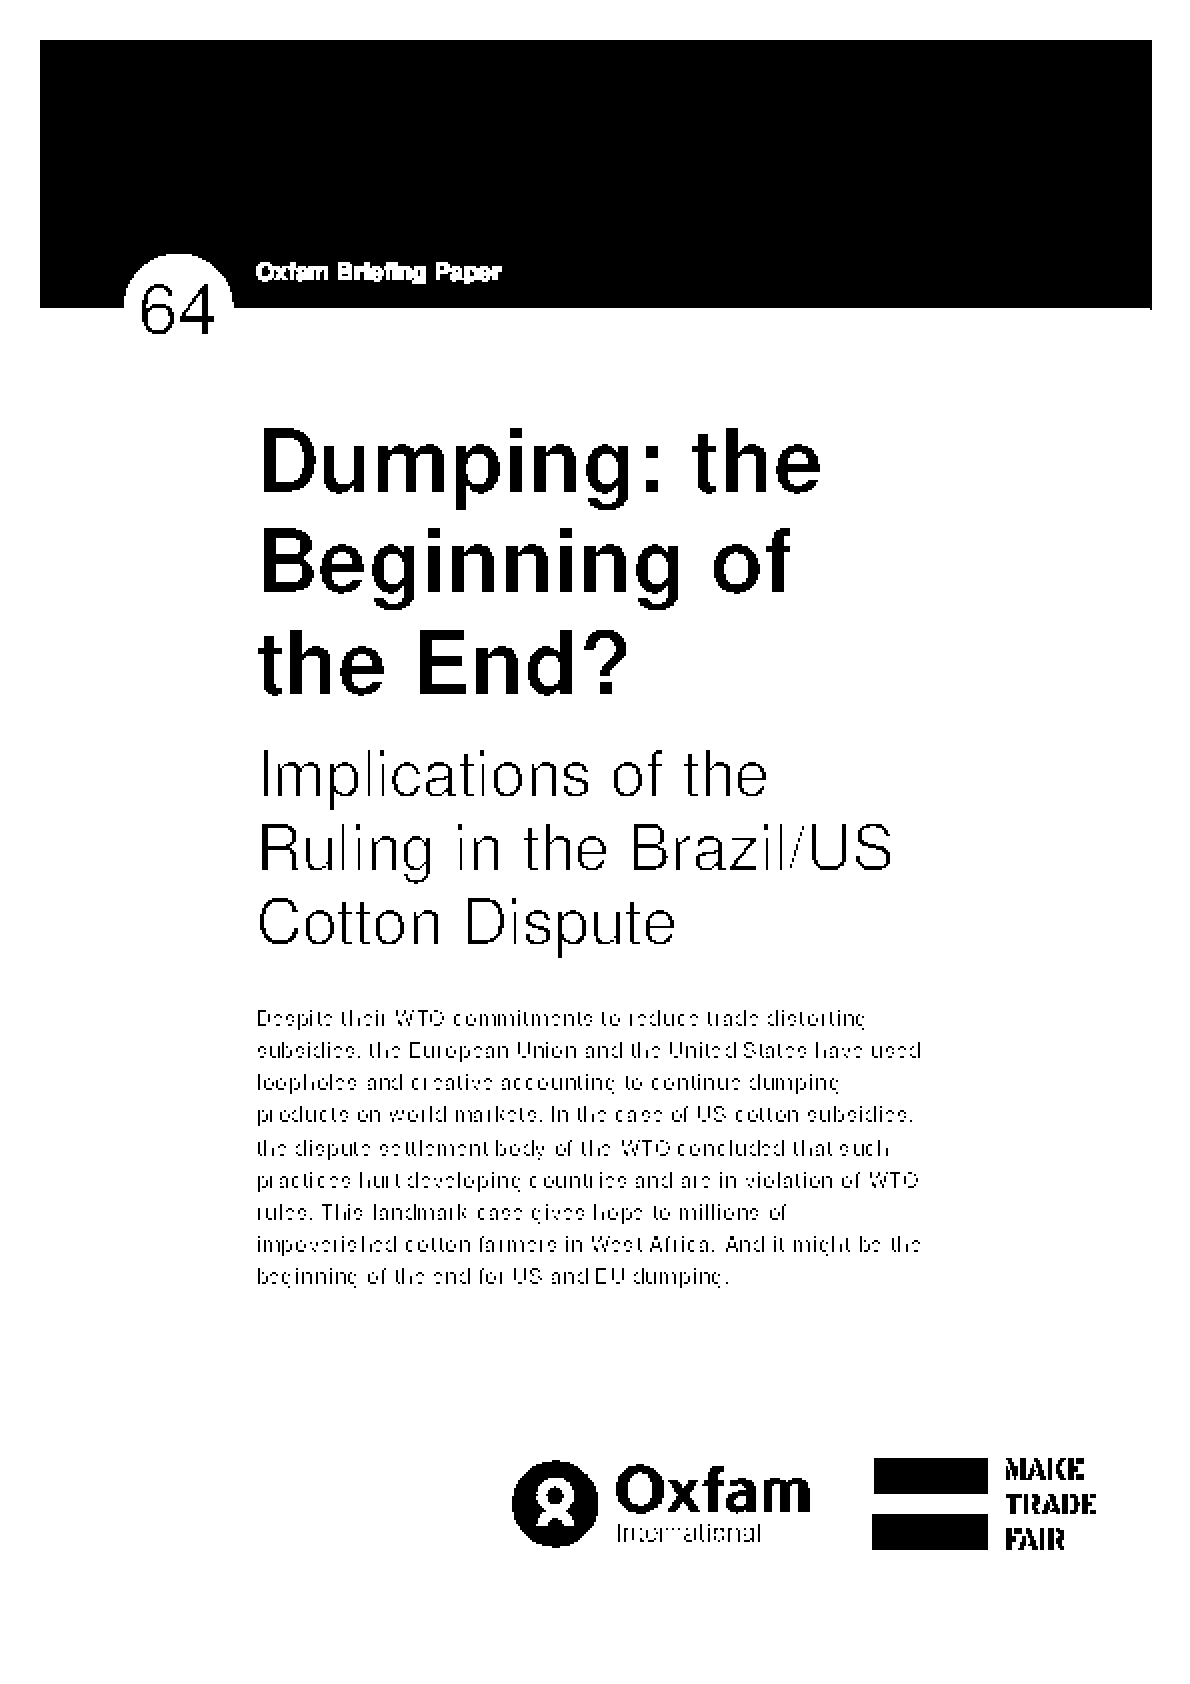 Dumping: The Beginning of the End? Implications of the ruling in the Brazil/US cotton dispute